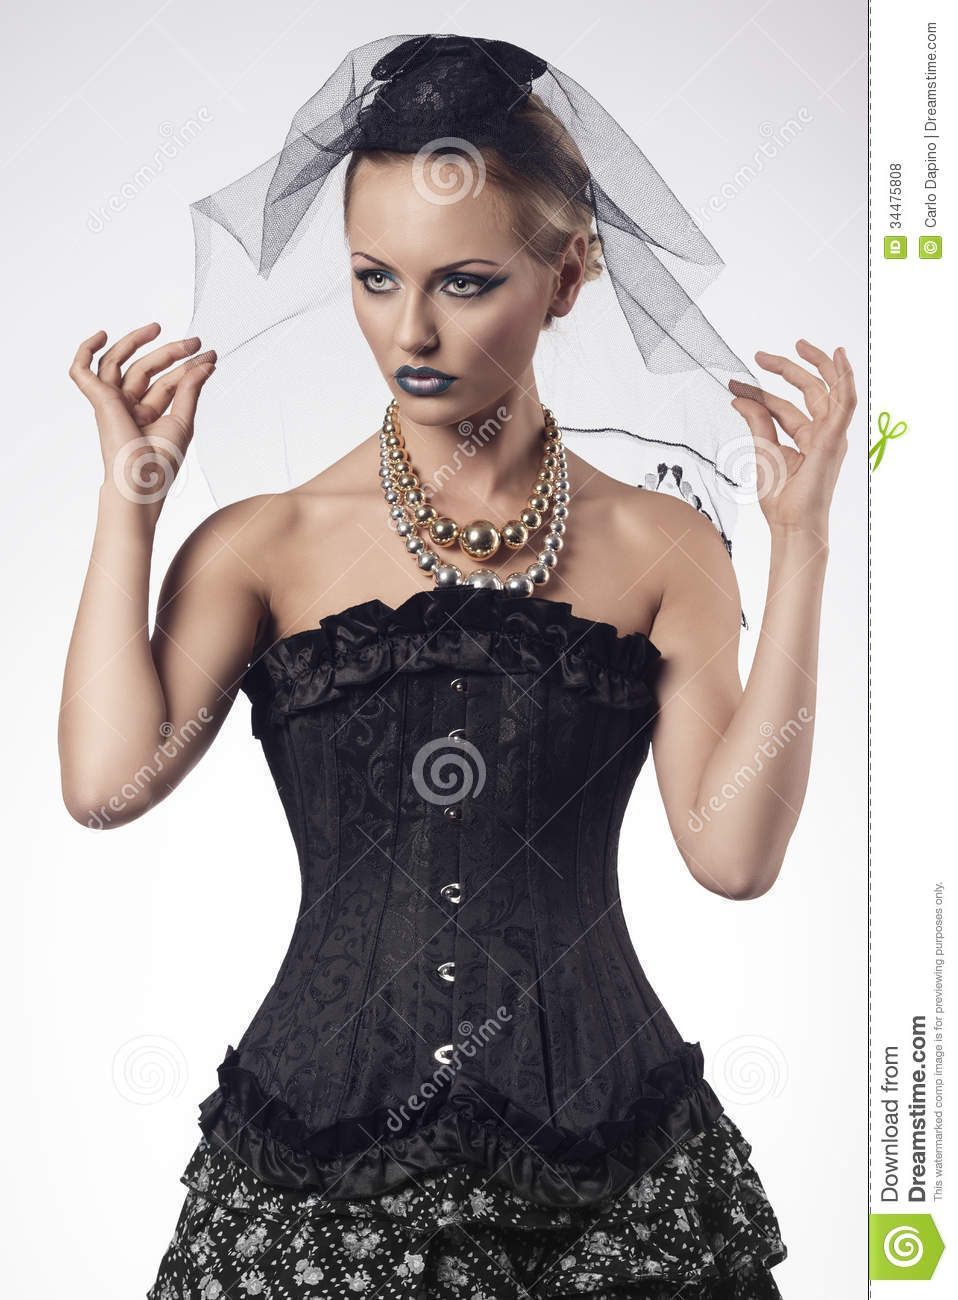 woman with fashion gothic style stock photo image 34475808